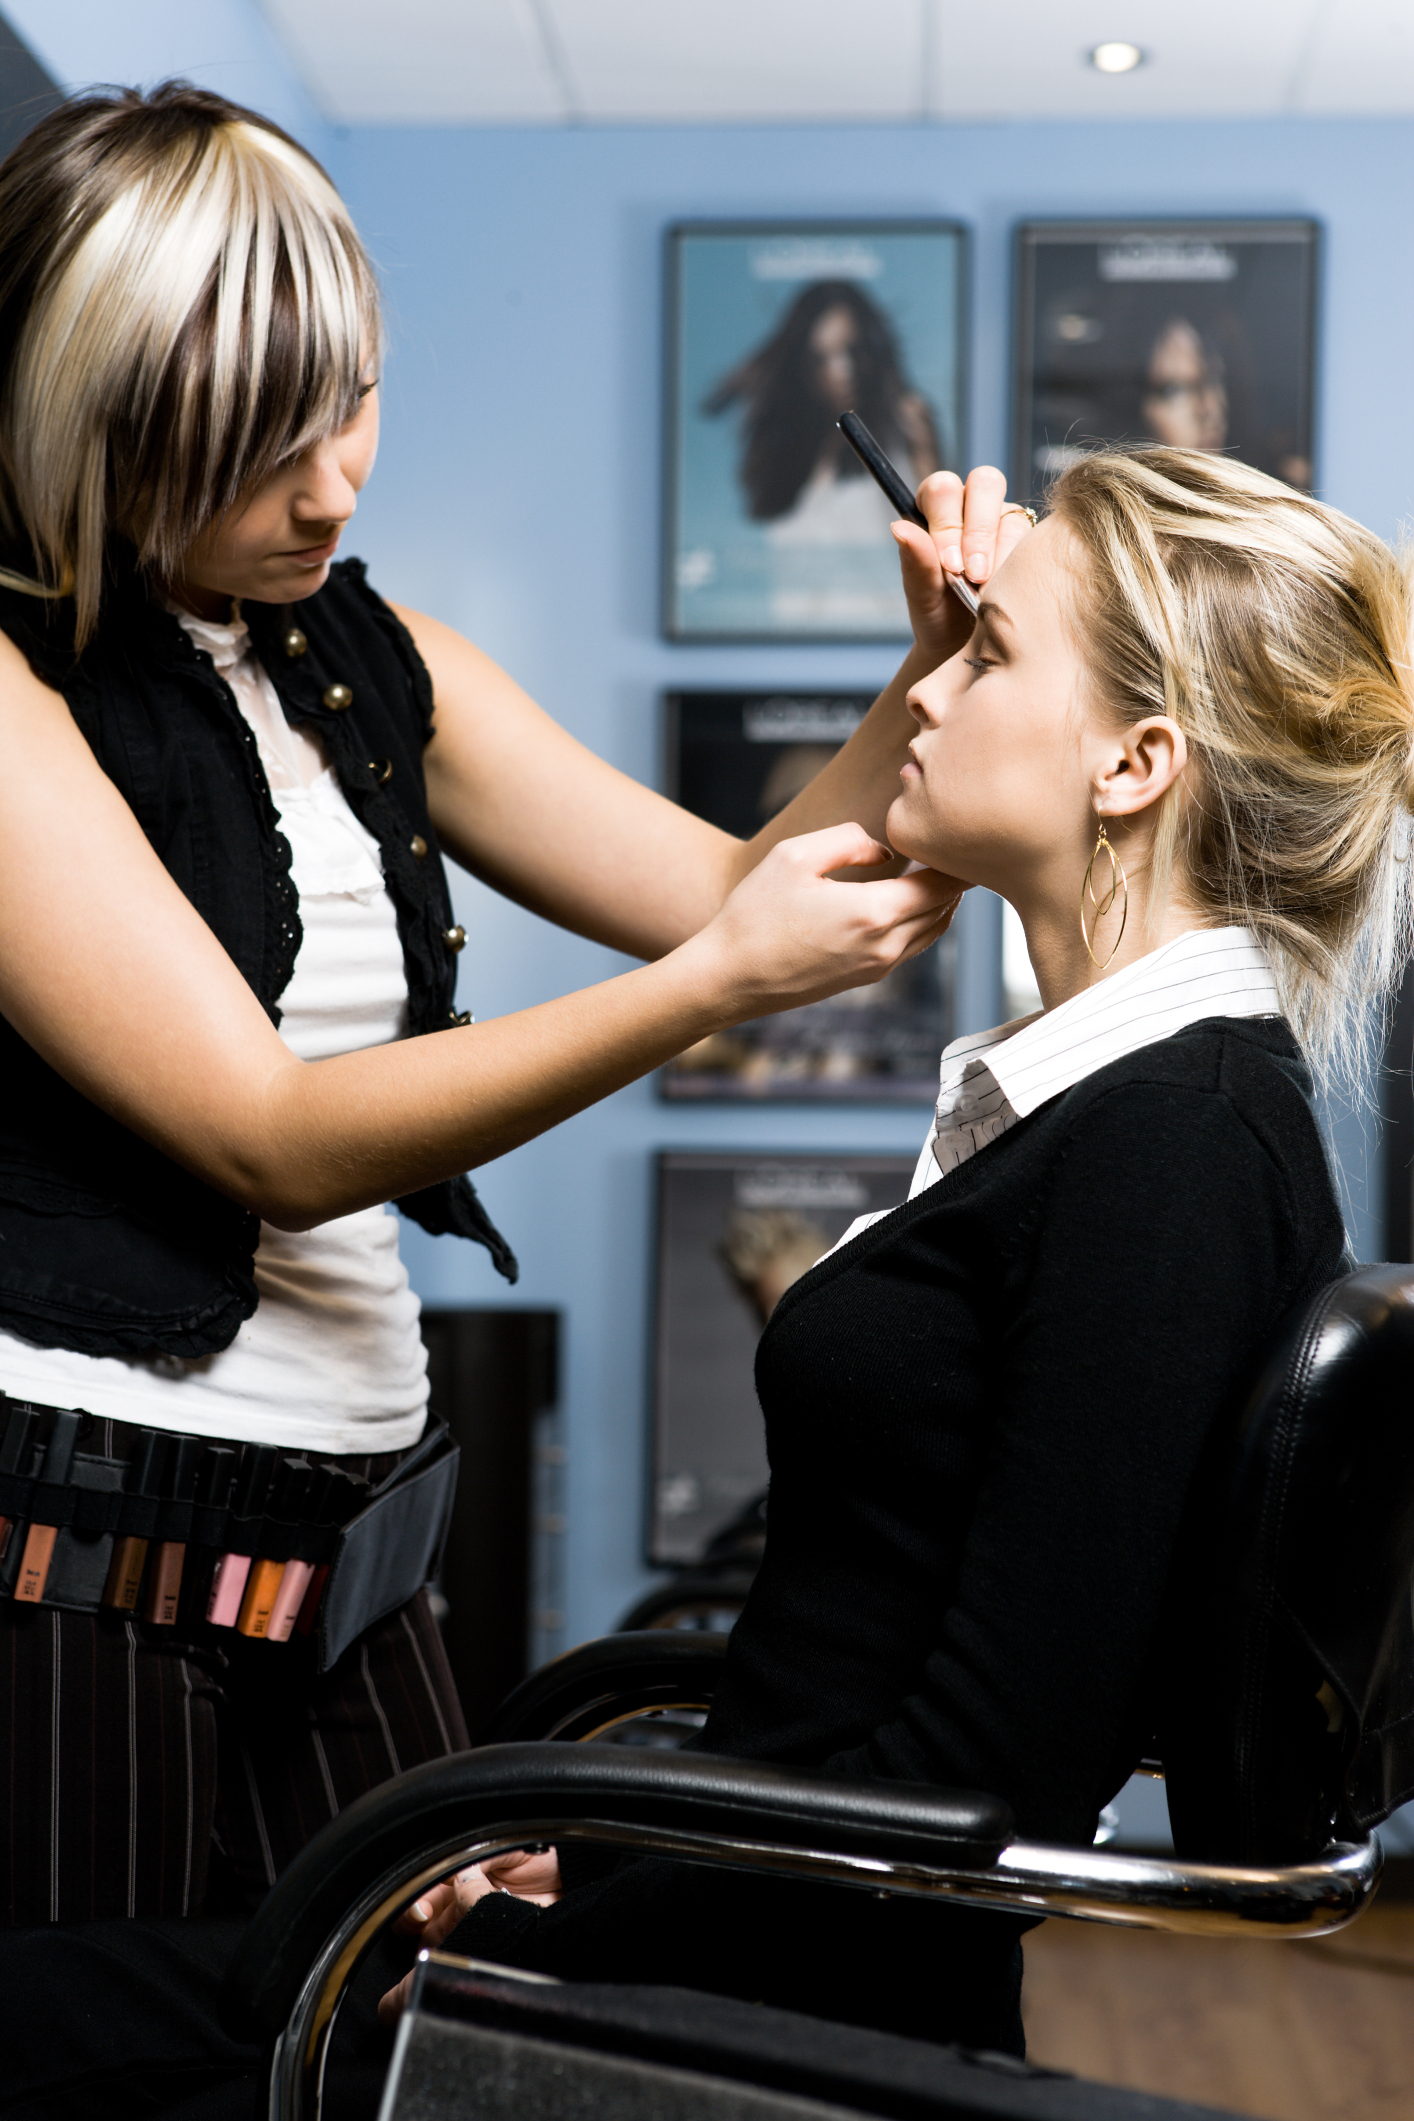 What Type of License is Needed to Open a Makeup Business? | Bizfluent